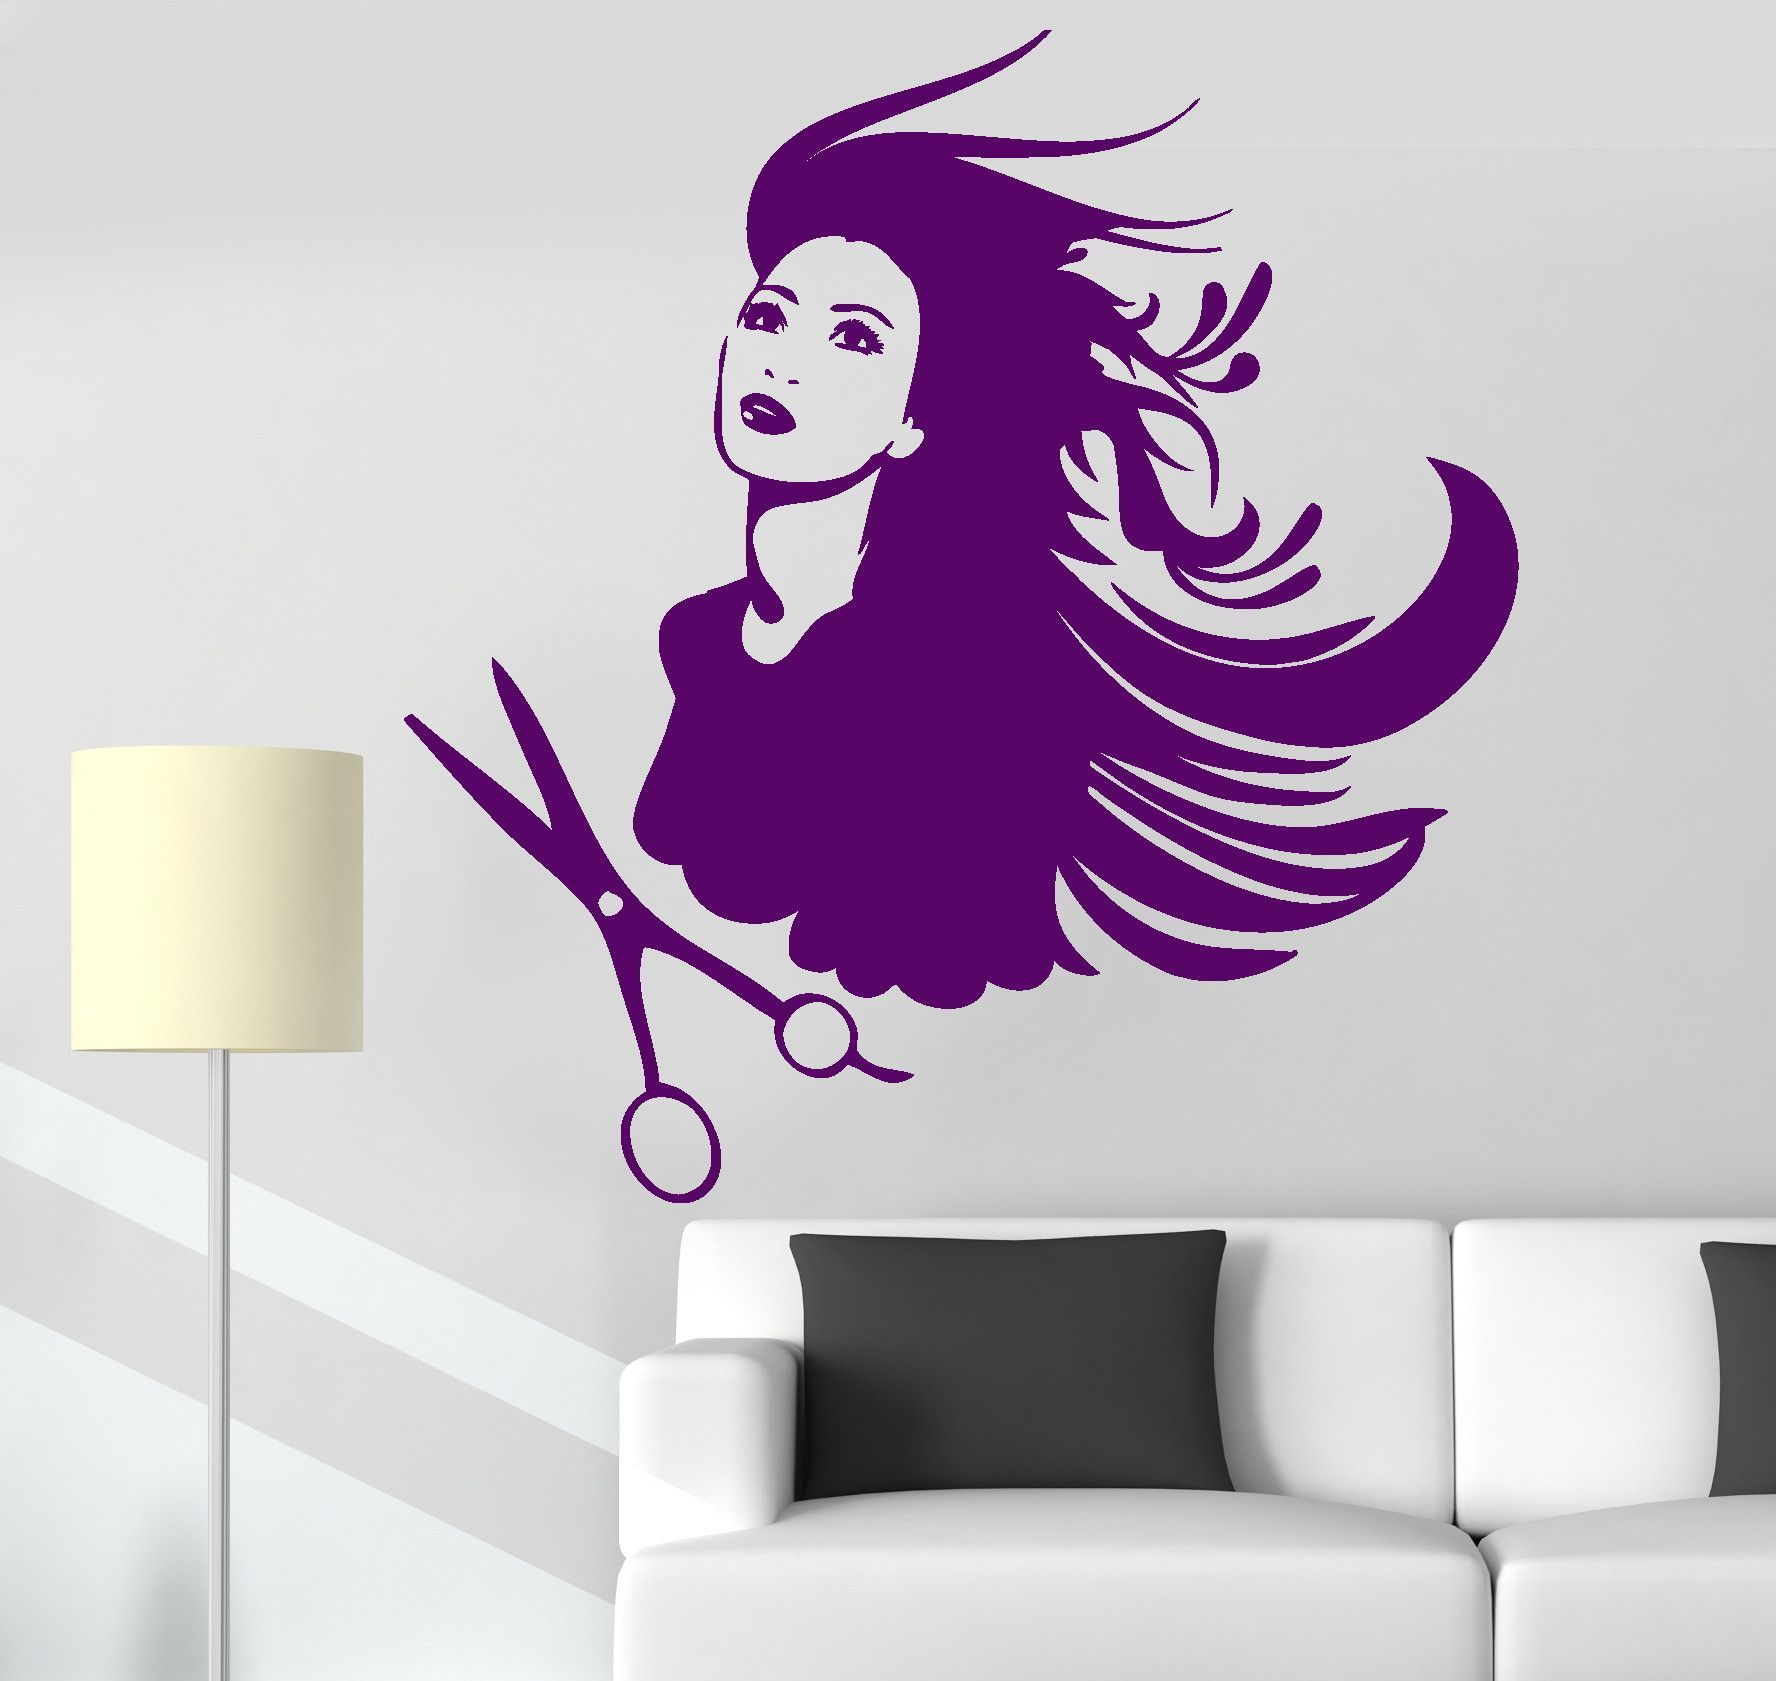 Vinyl Wall Decal Hair Salon Barbershop Stylist Hairdresser - Custom vinyl wall decals for hair salonvinyl wall decal hair salon stylist hairdresser barber shop